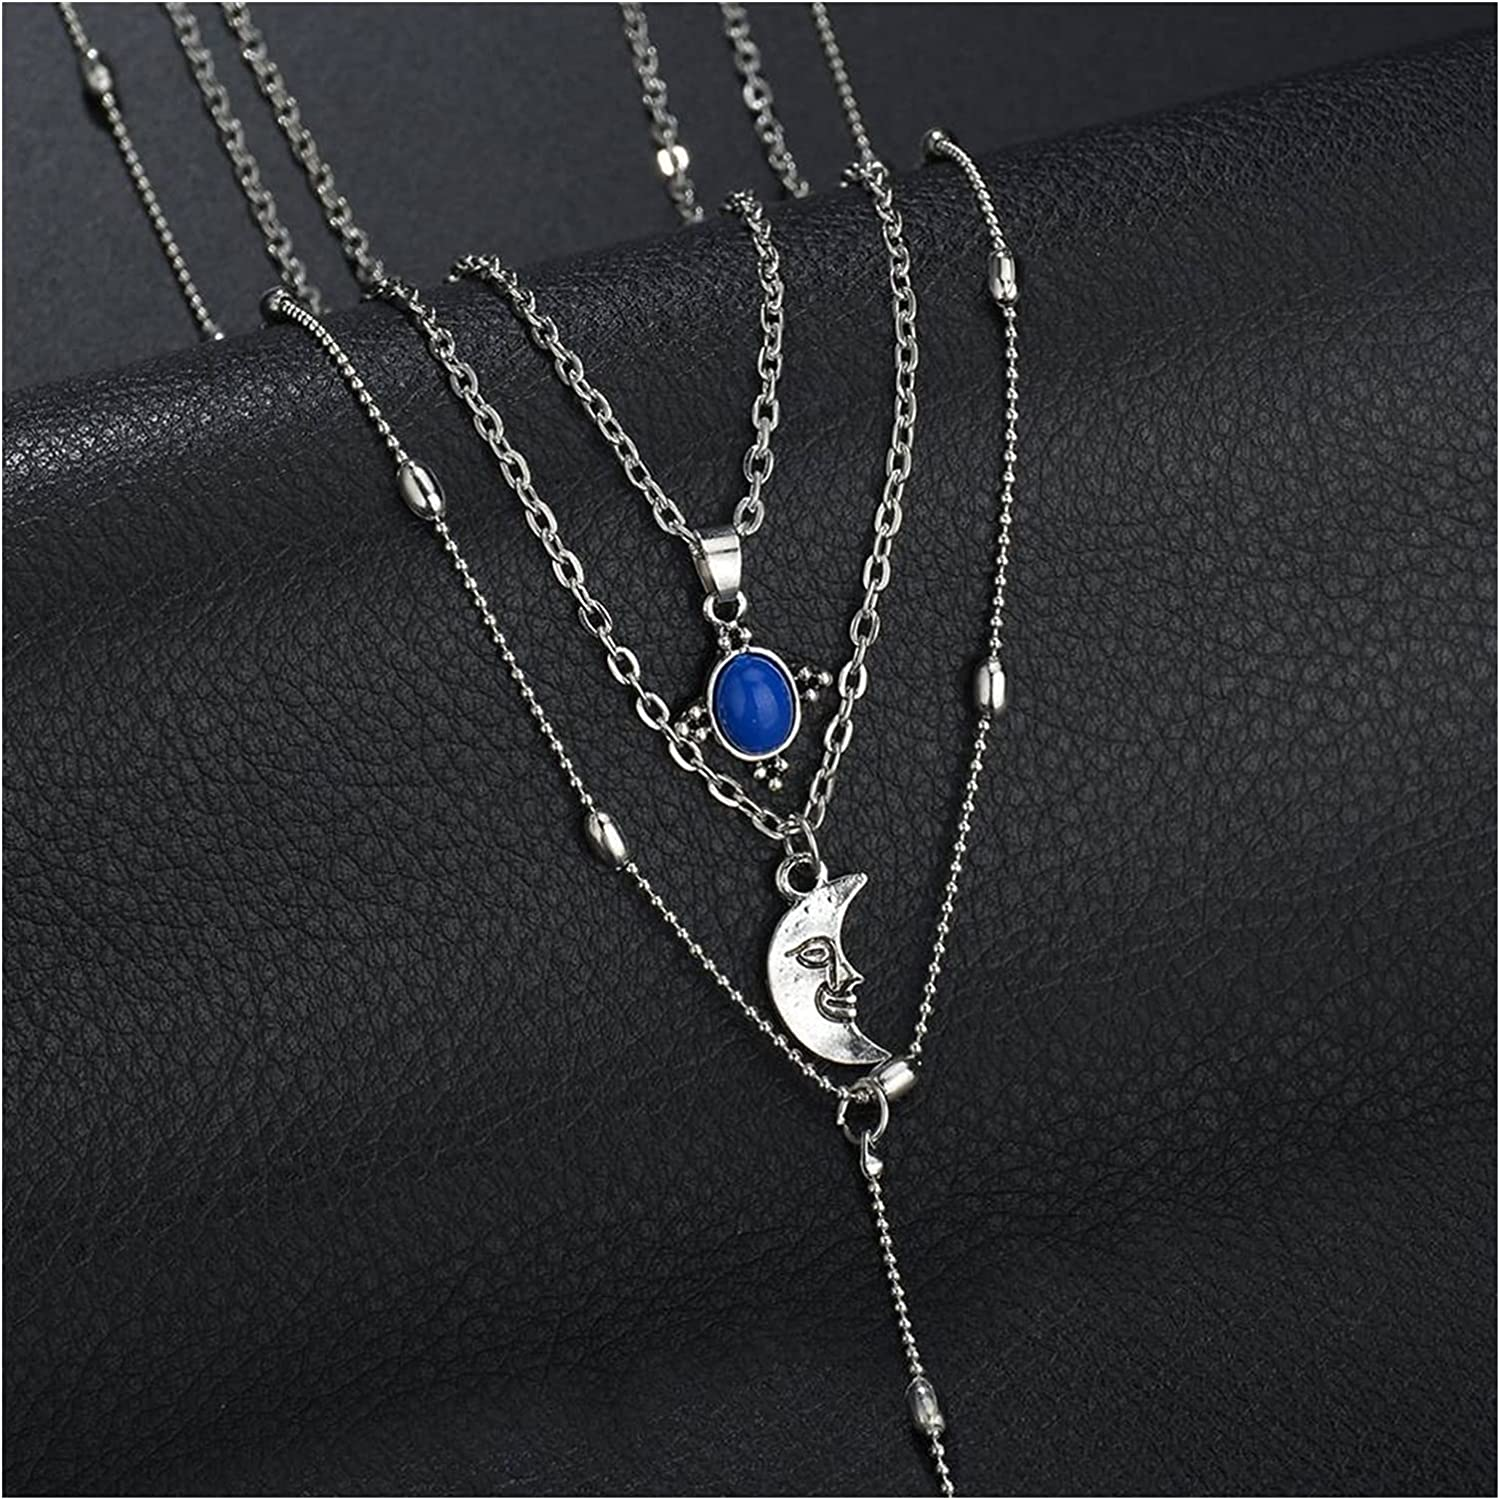 Style Metal Moon Face Portrait Multiple Chains Necklace Choker Pendent Necklace for Women Collar Neck